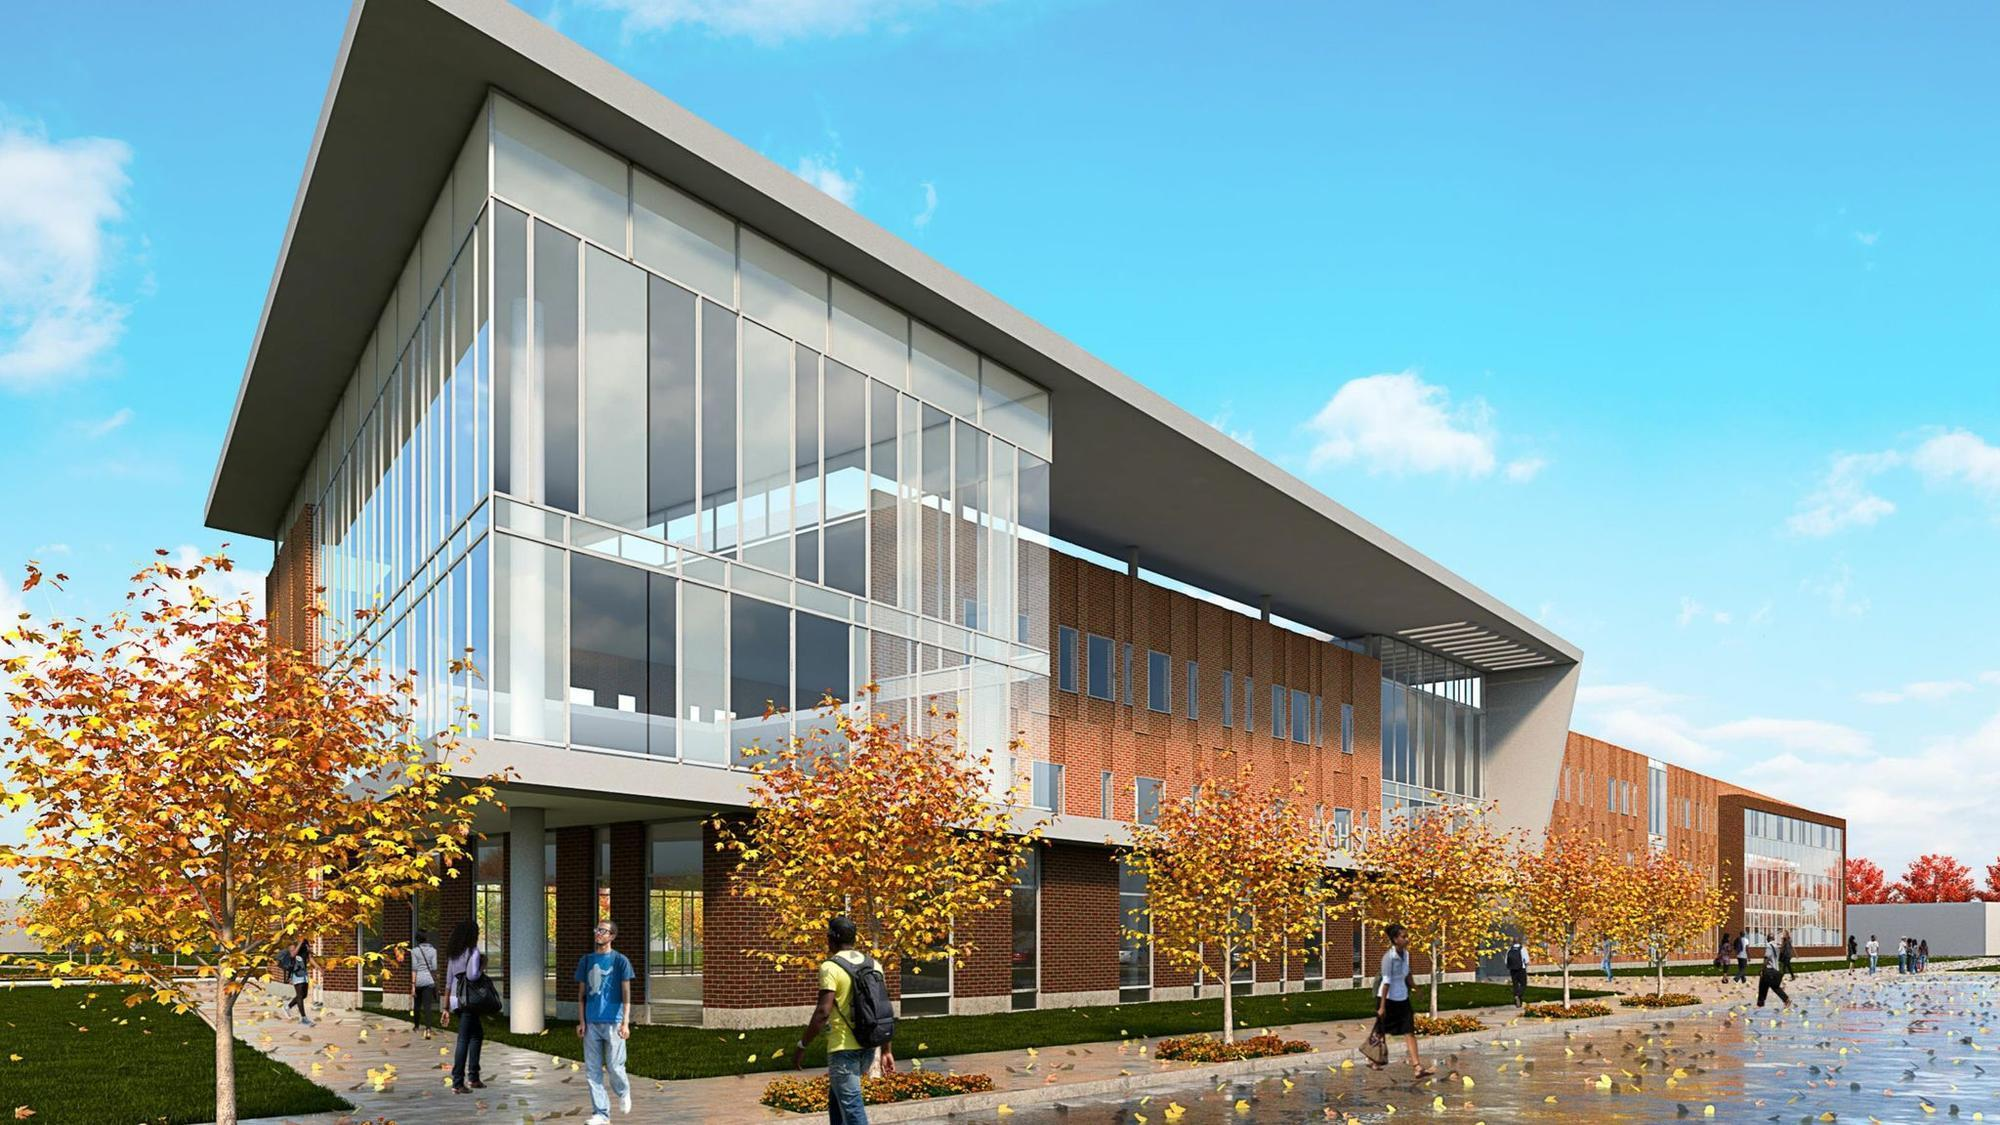 Design plans for new englewood high school promoted ahead of public hearings chicago tribune